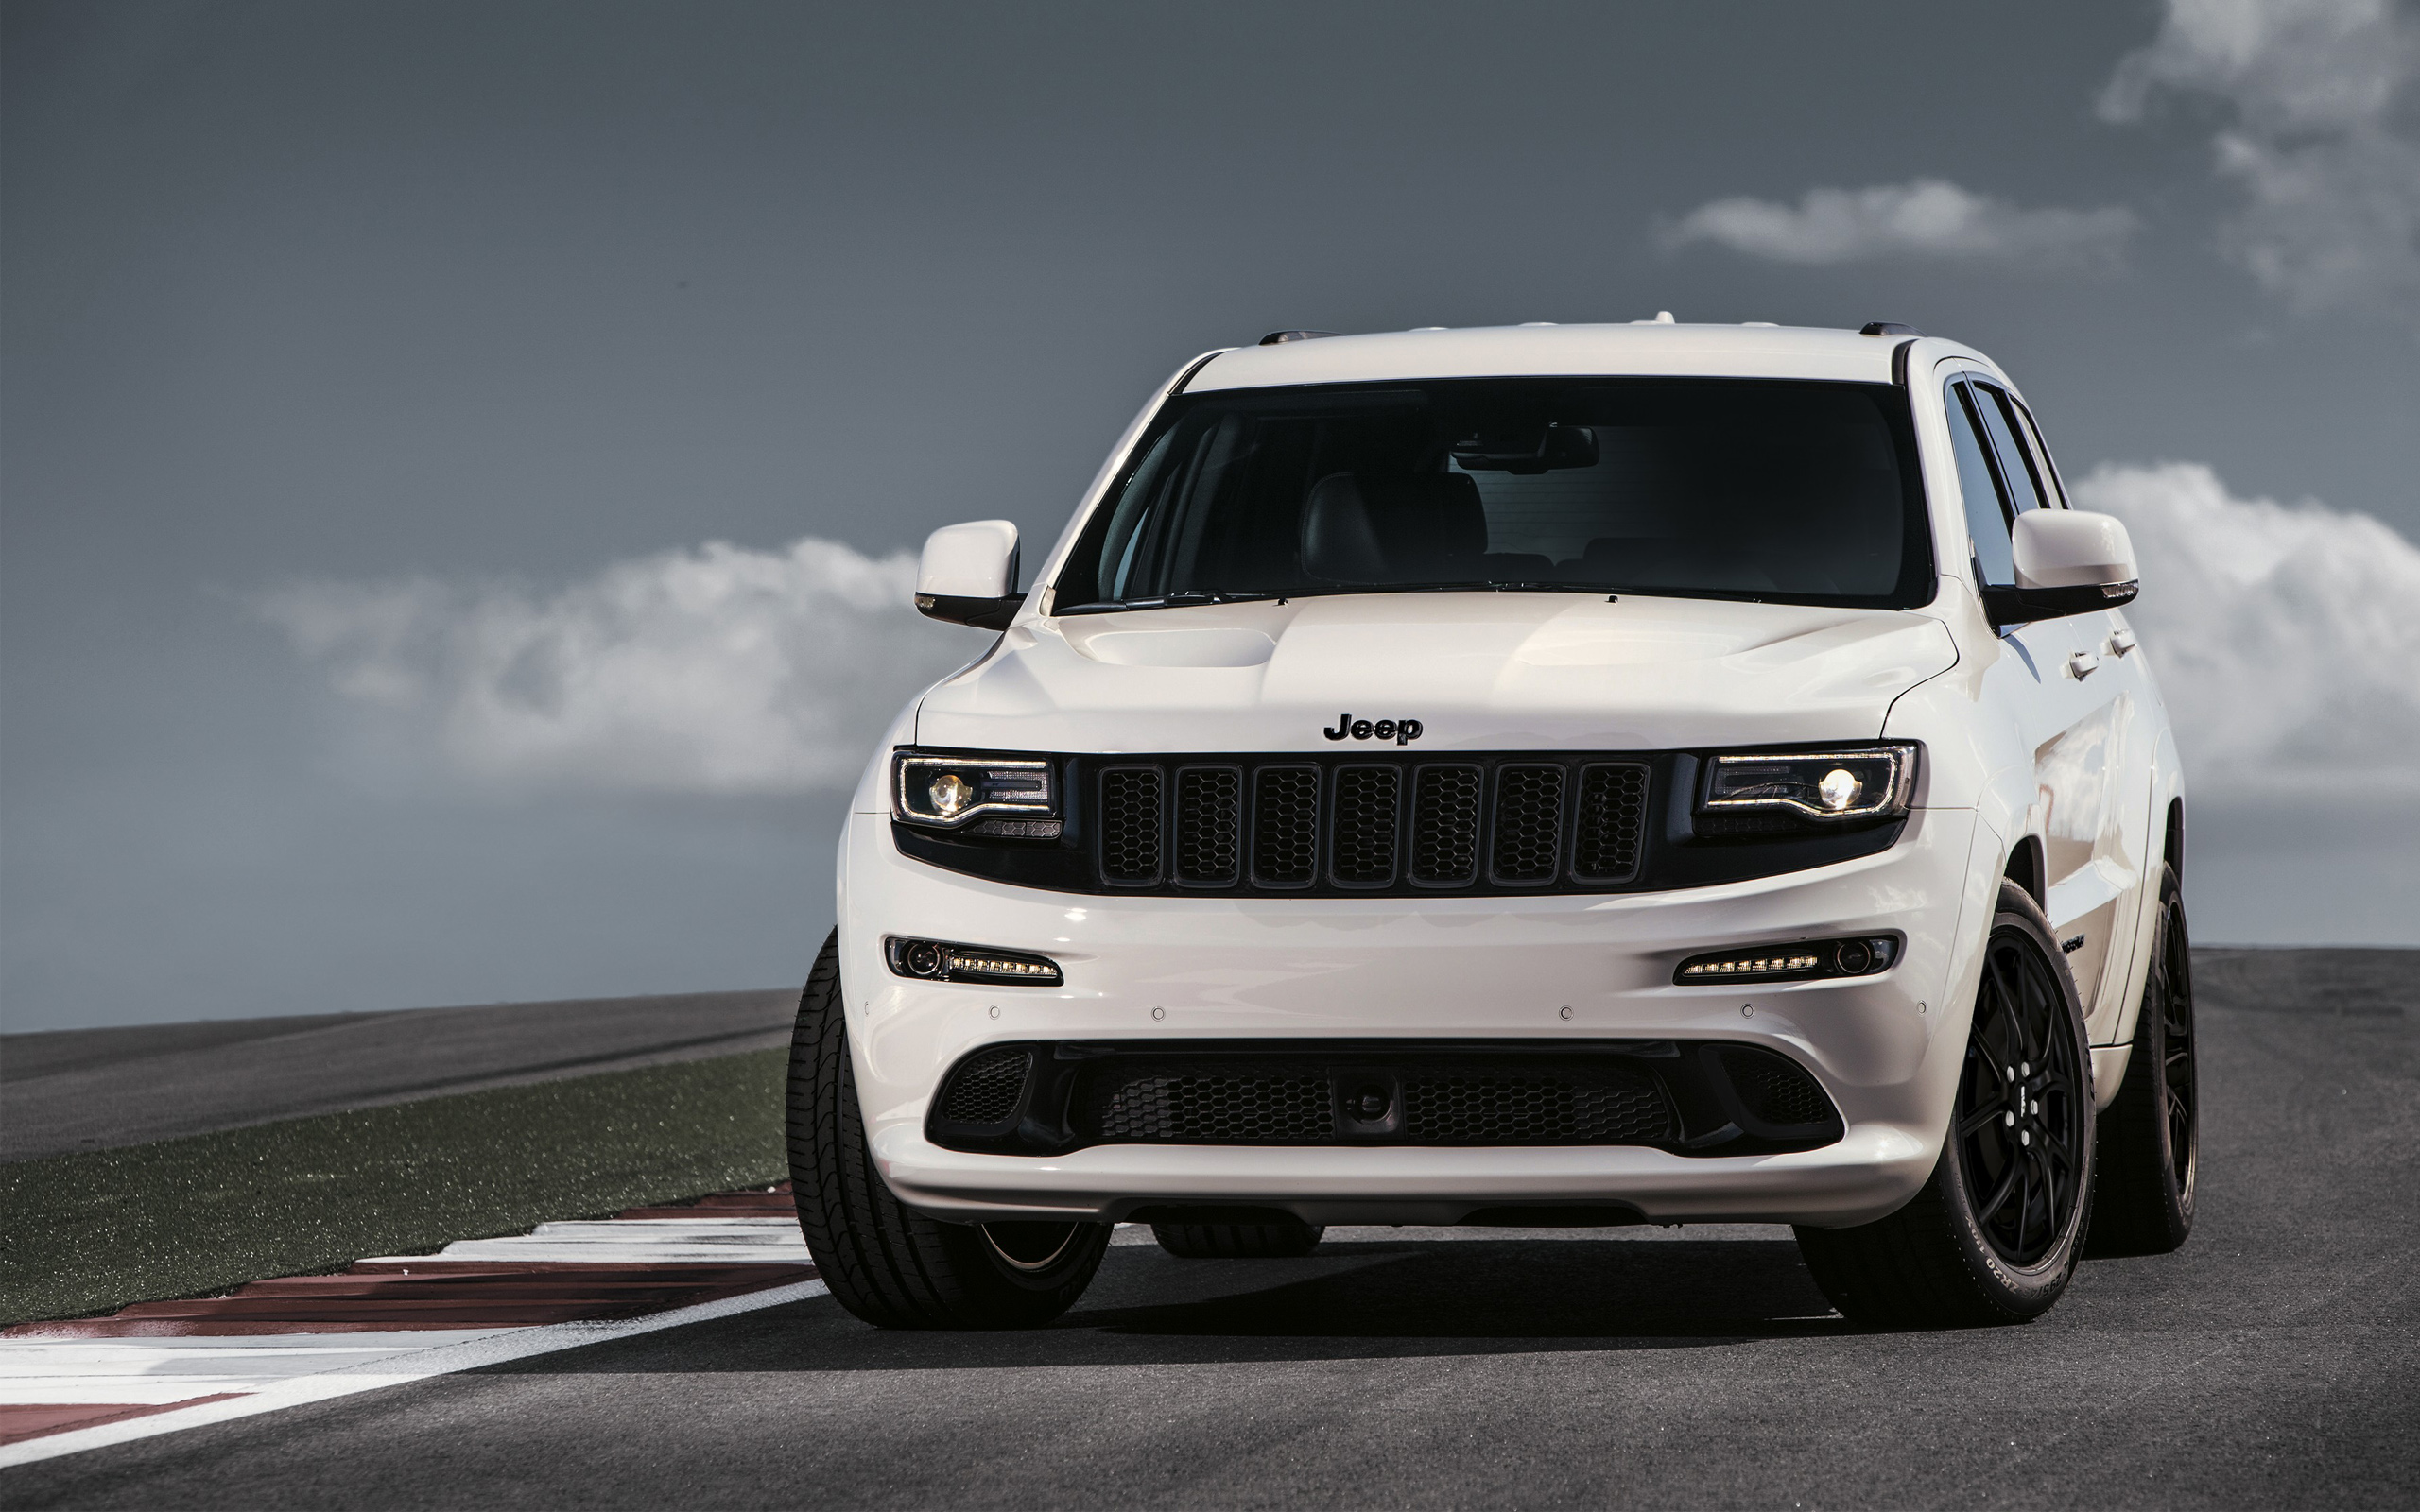 2017_jeep_grand_cherokee_srt wide 2017 jeep grand cherokee srt wallpaper hd car wallpapers  at eliteediting.co